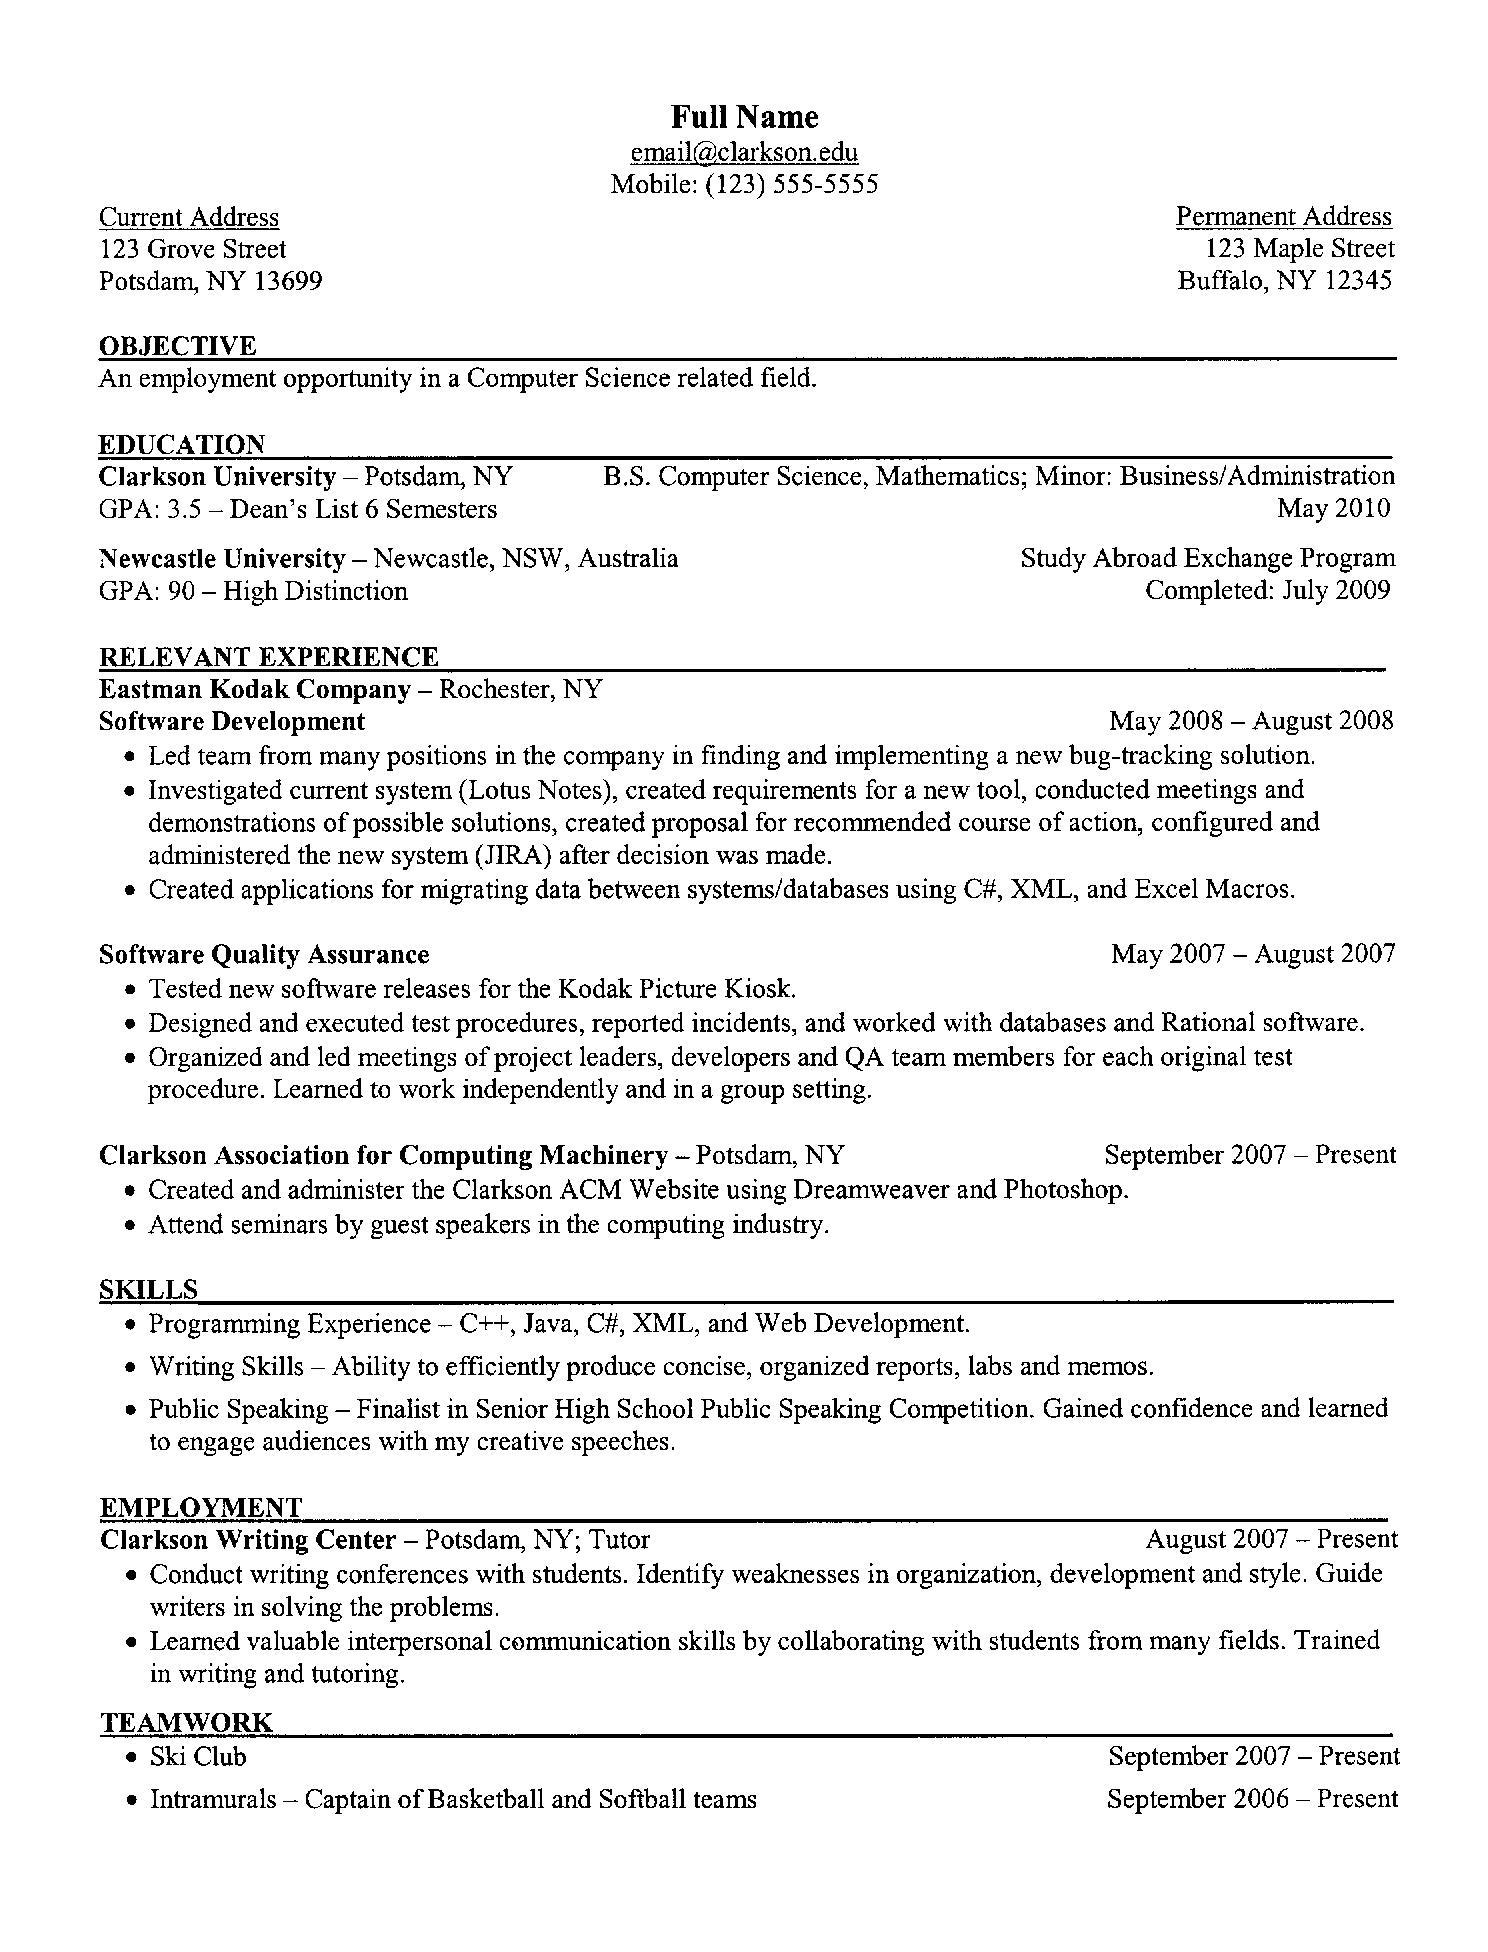 Resume Objective Example Electrical Engineer Resume Objective New Survey Entry Apologize The Spacing Example Made Way Wallpapers Mpg Criminal Justice Accounting Examples Format Freshers Engineers Car resume objective example wikiresume.com